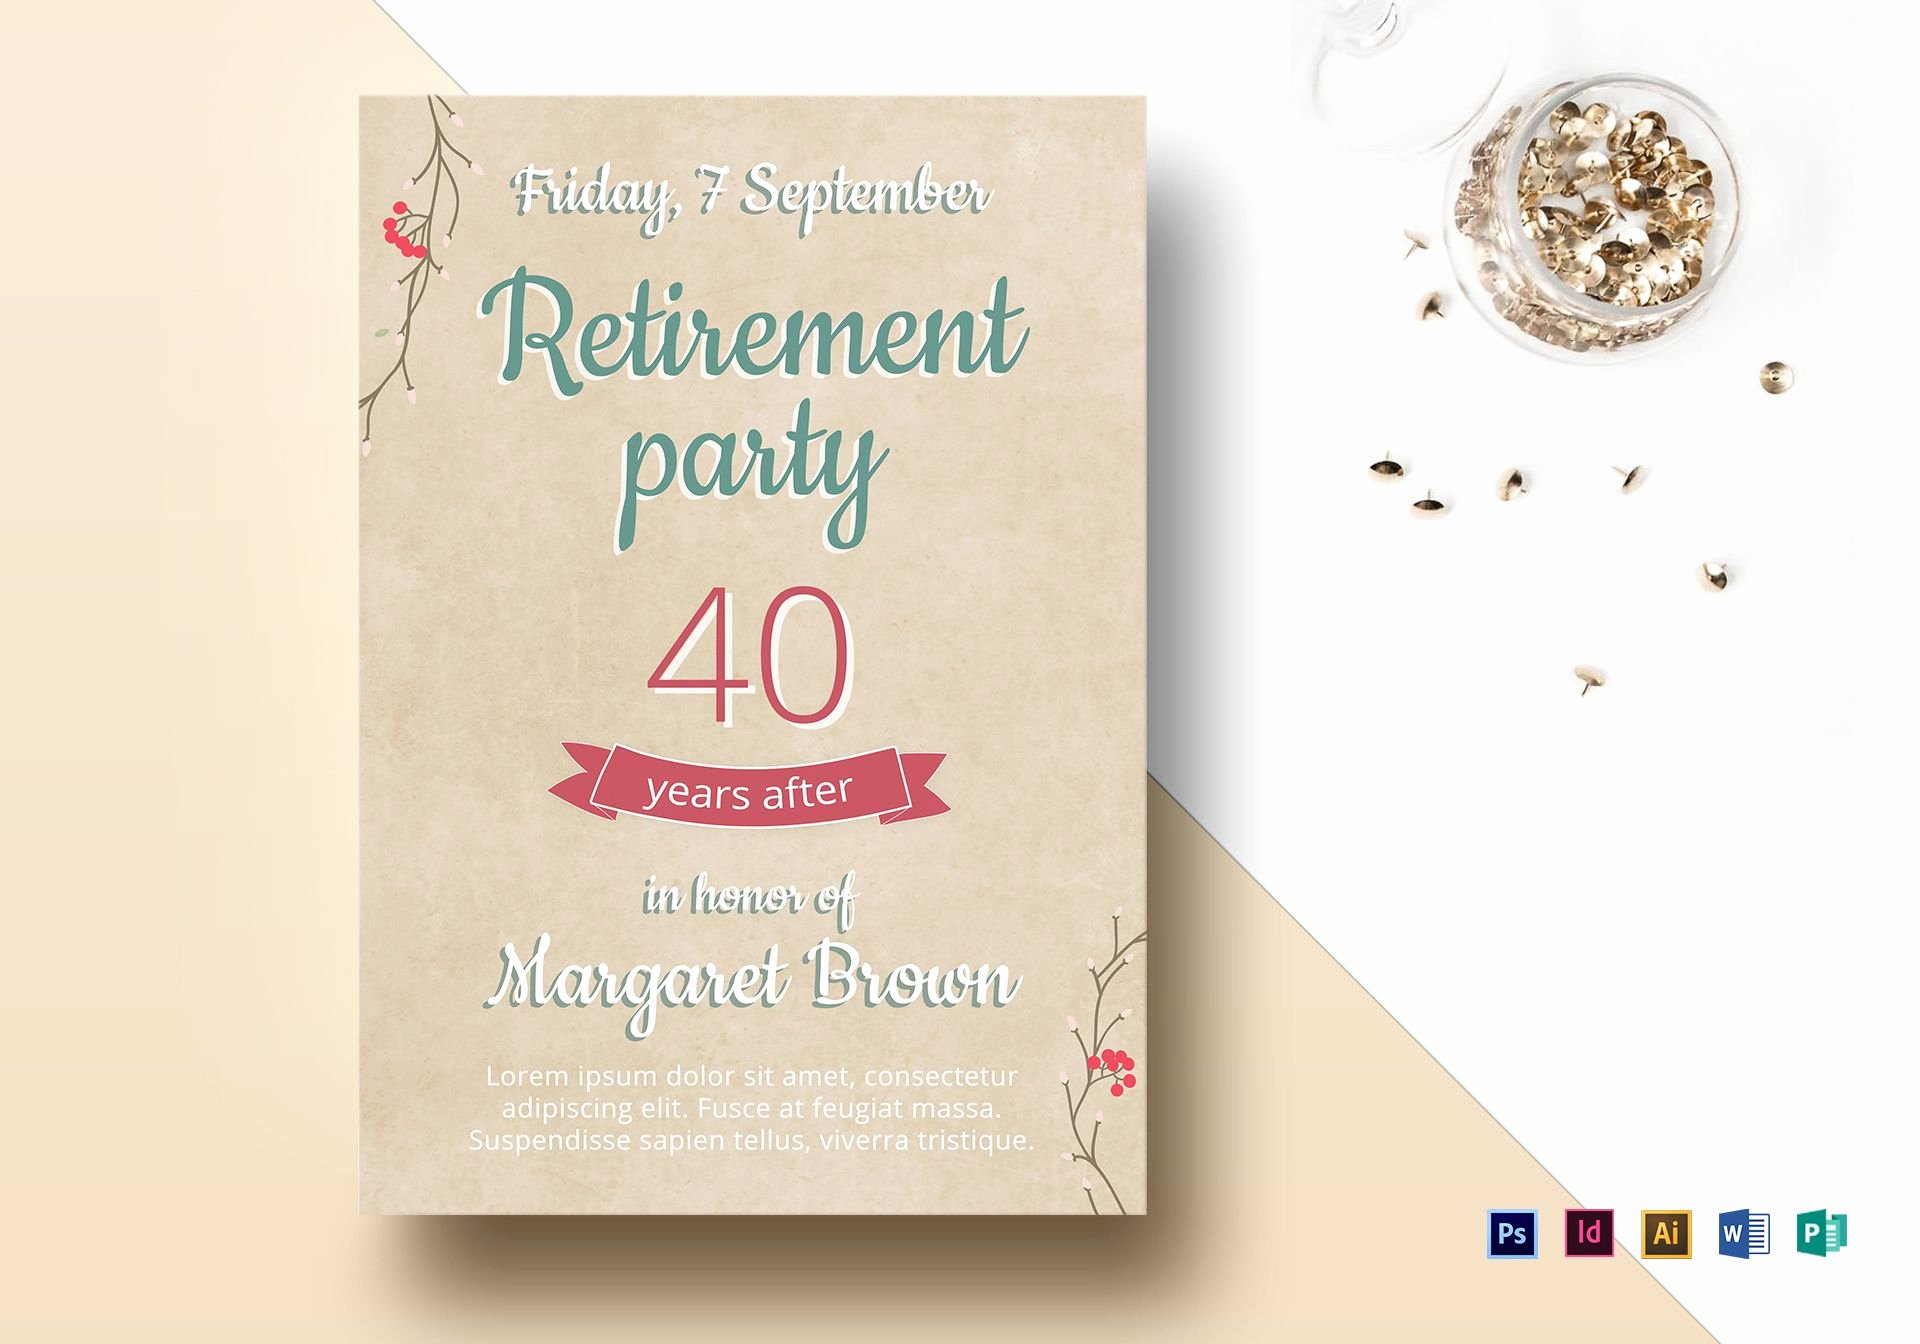 Retirement Party Flyer Templates Free New Retirement Party Flyer Design Template In Psd Word